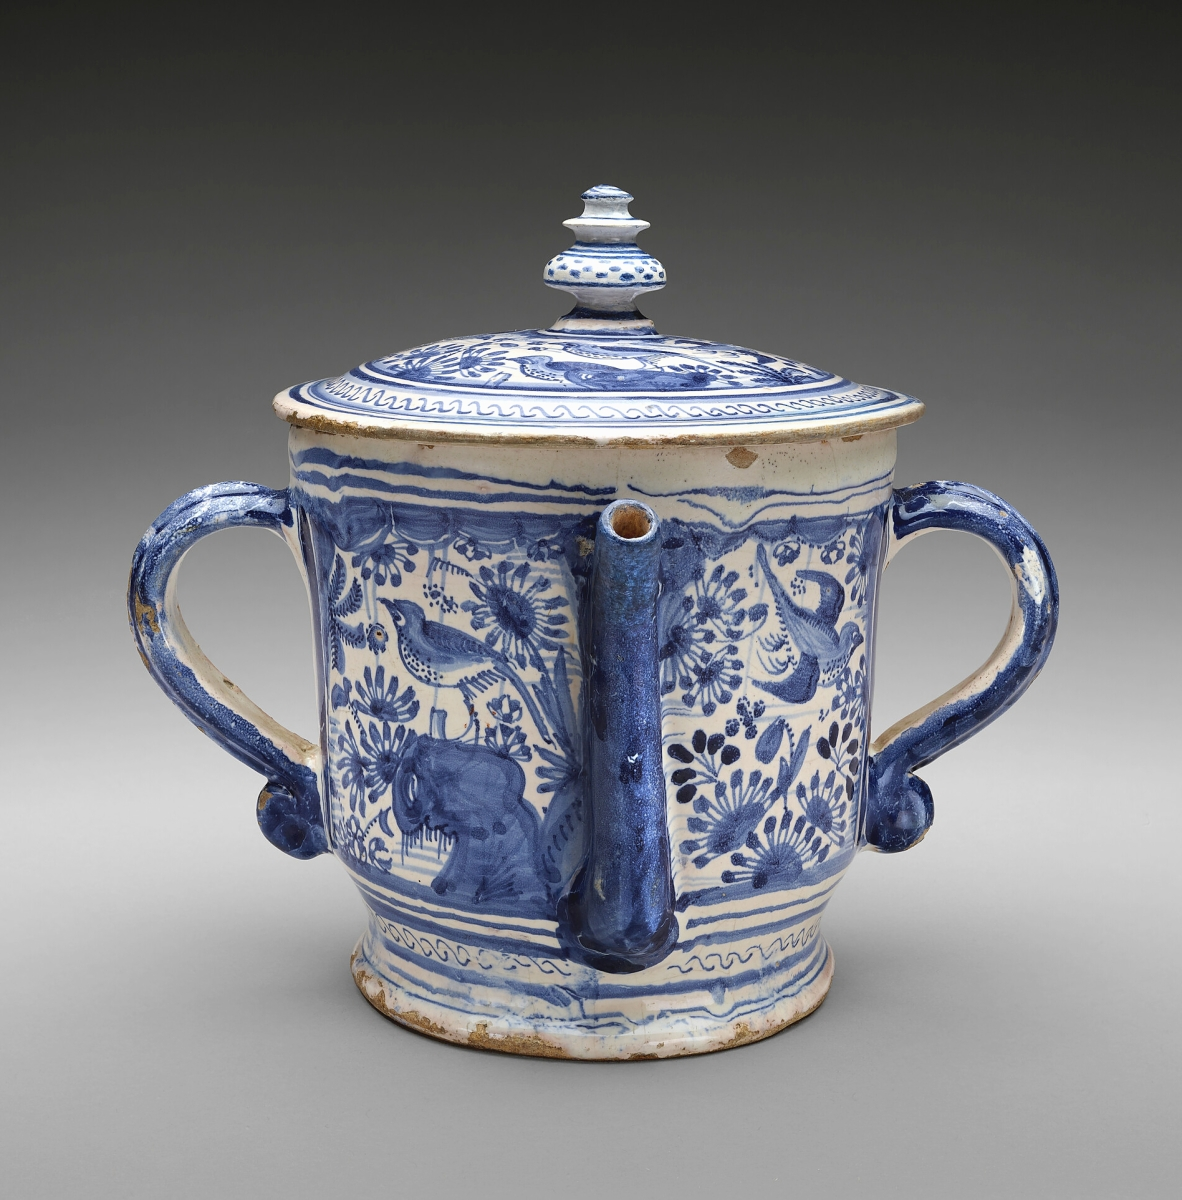 Posset pot, English, possibly Southwark Delftware, circa 1630-35. Tin-glazed earthenware. The Bayou Bend Collection, gift of Katharine Prentis Murphy.